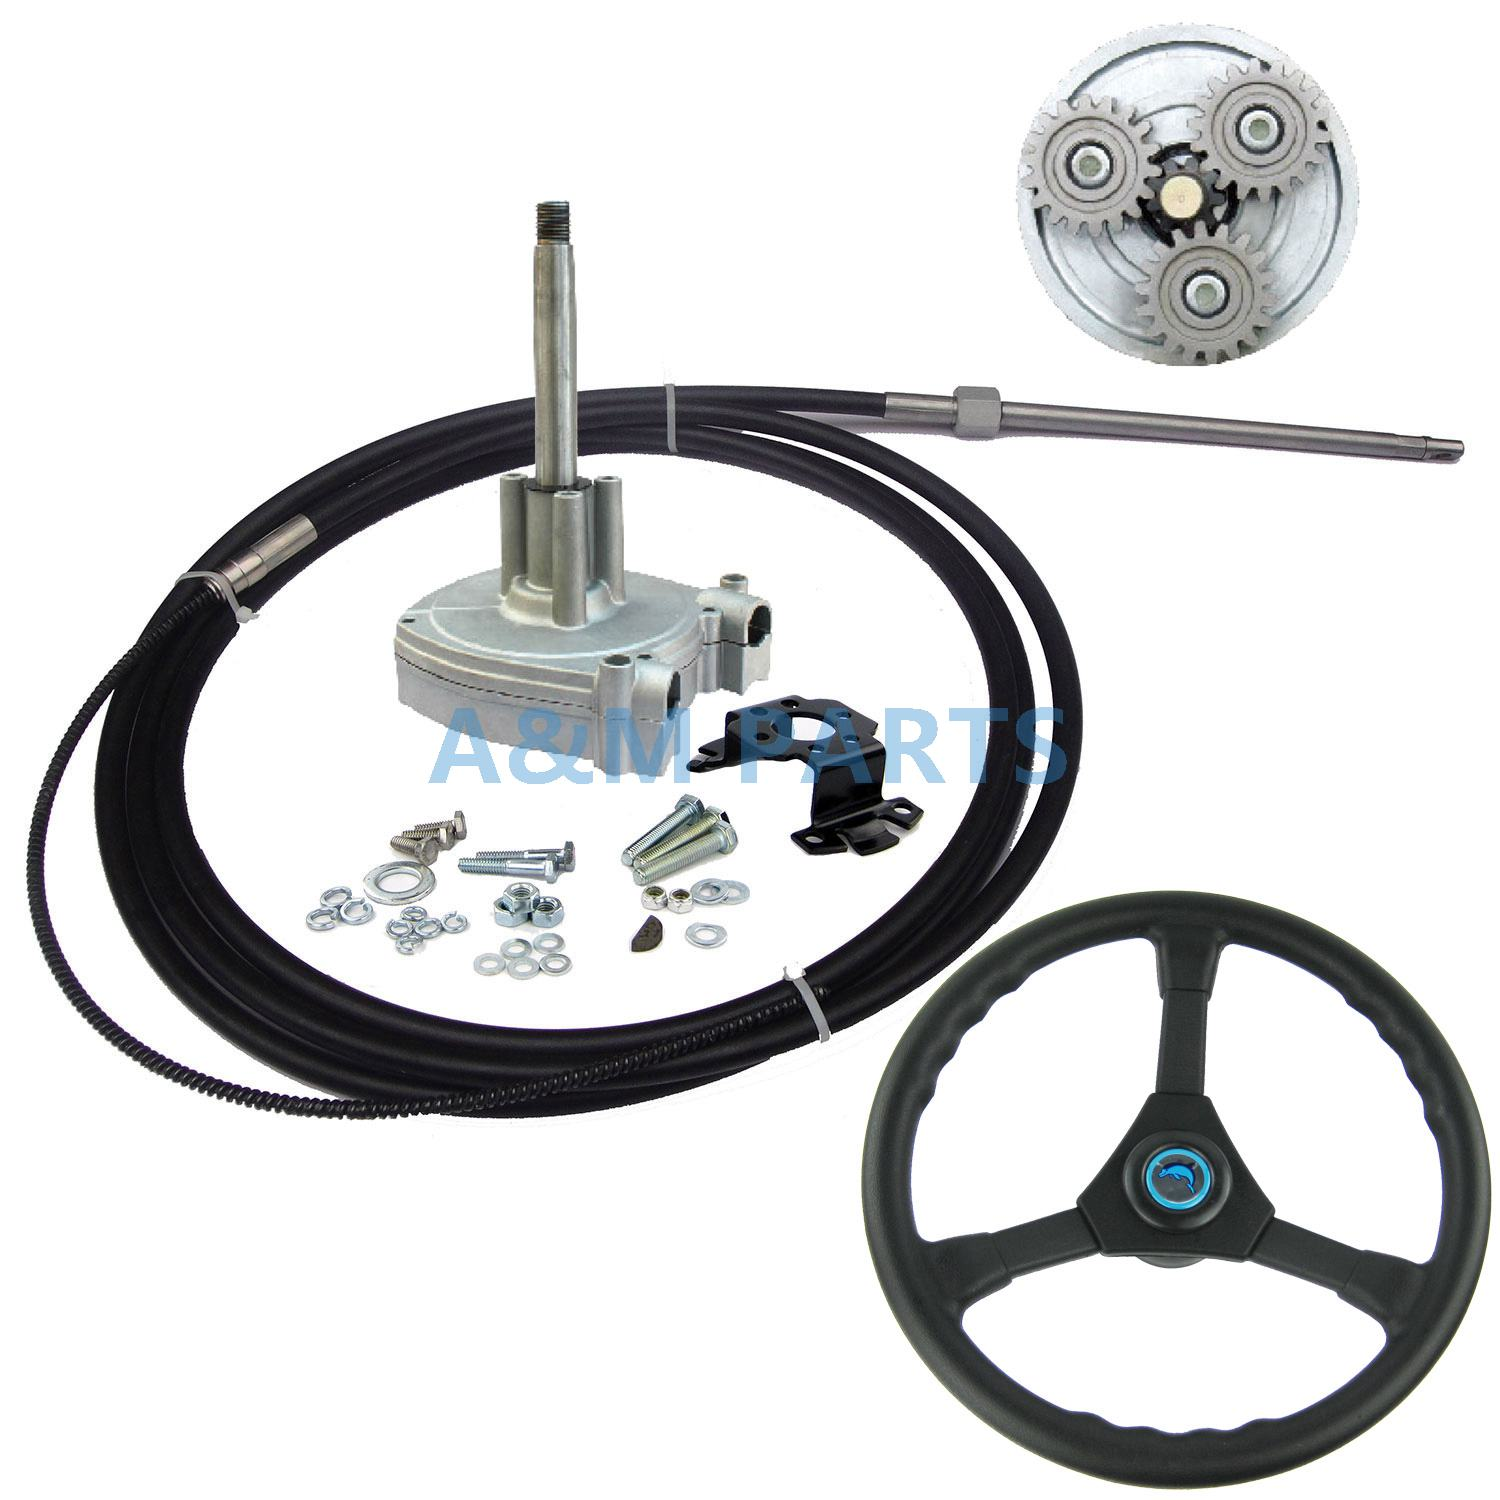 12FT Planetary Gear Marine Outboard Mechanical Steering System Helm With Boat Steering Cable Wheel